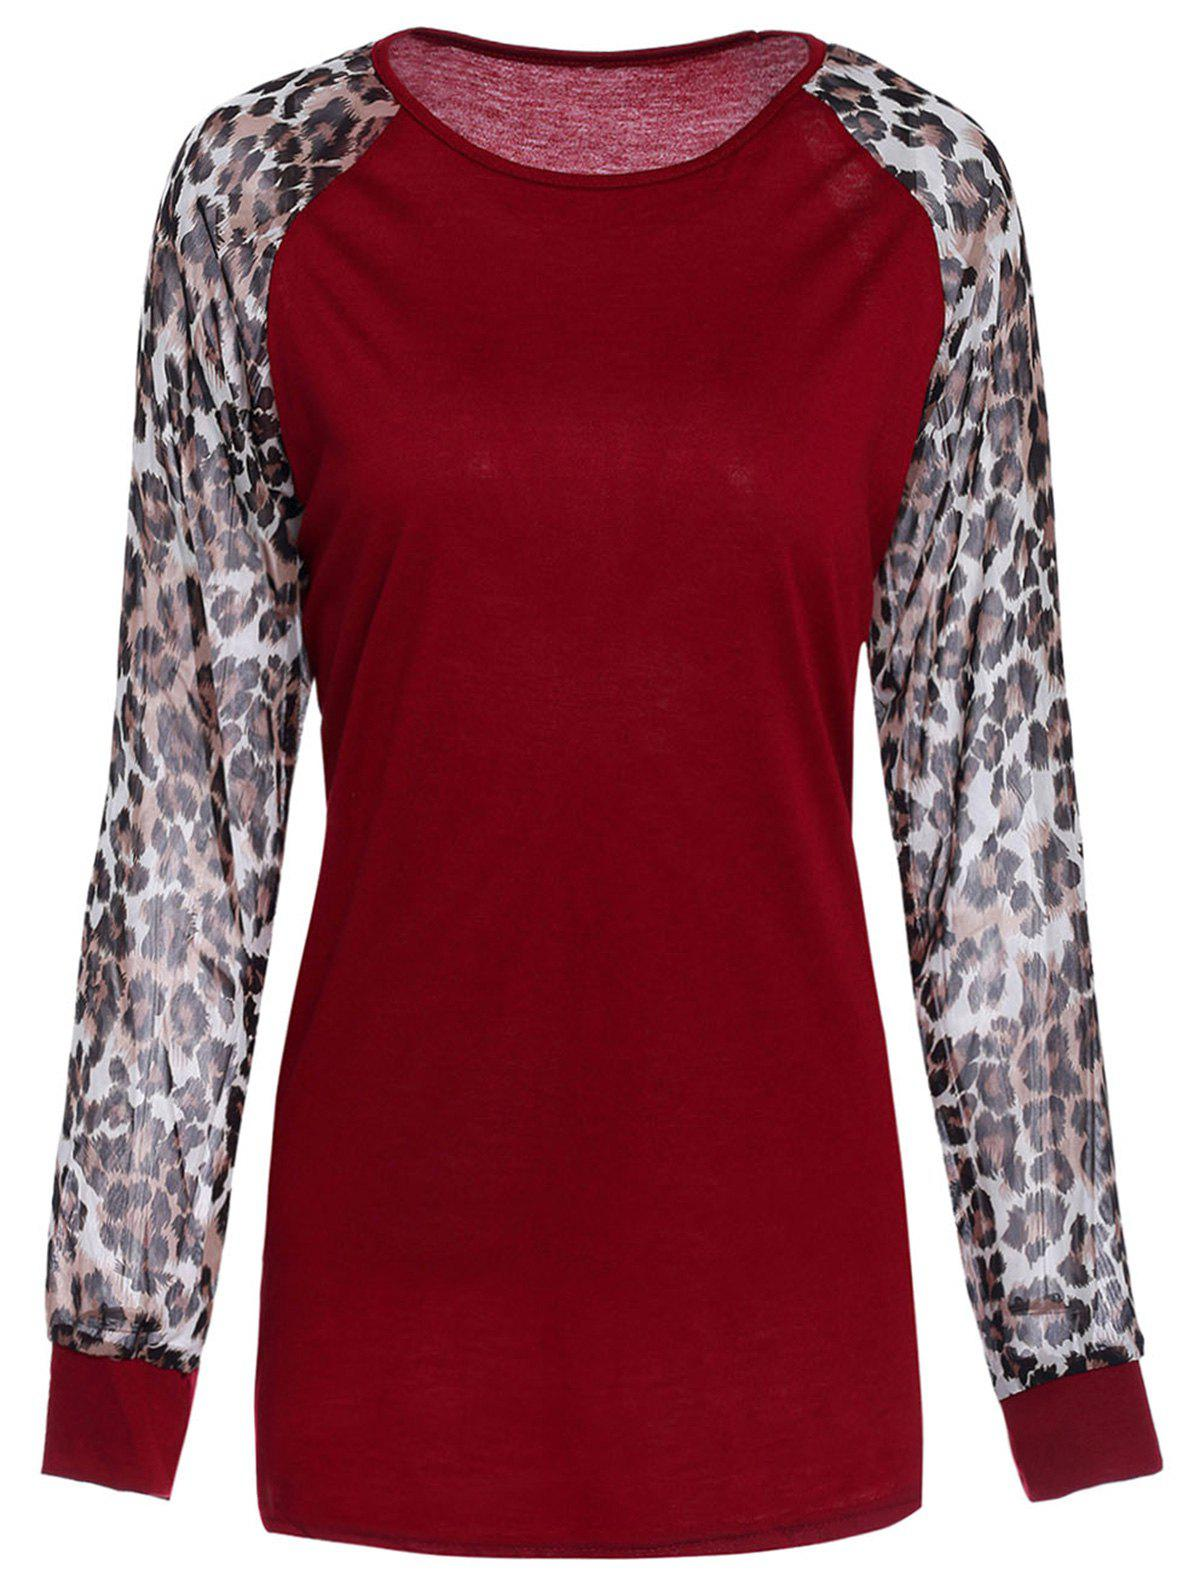 Chic Leopard Splicing Round Neck Long Sleeve T-Shirt For Women - WINE RED 2XL